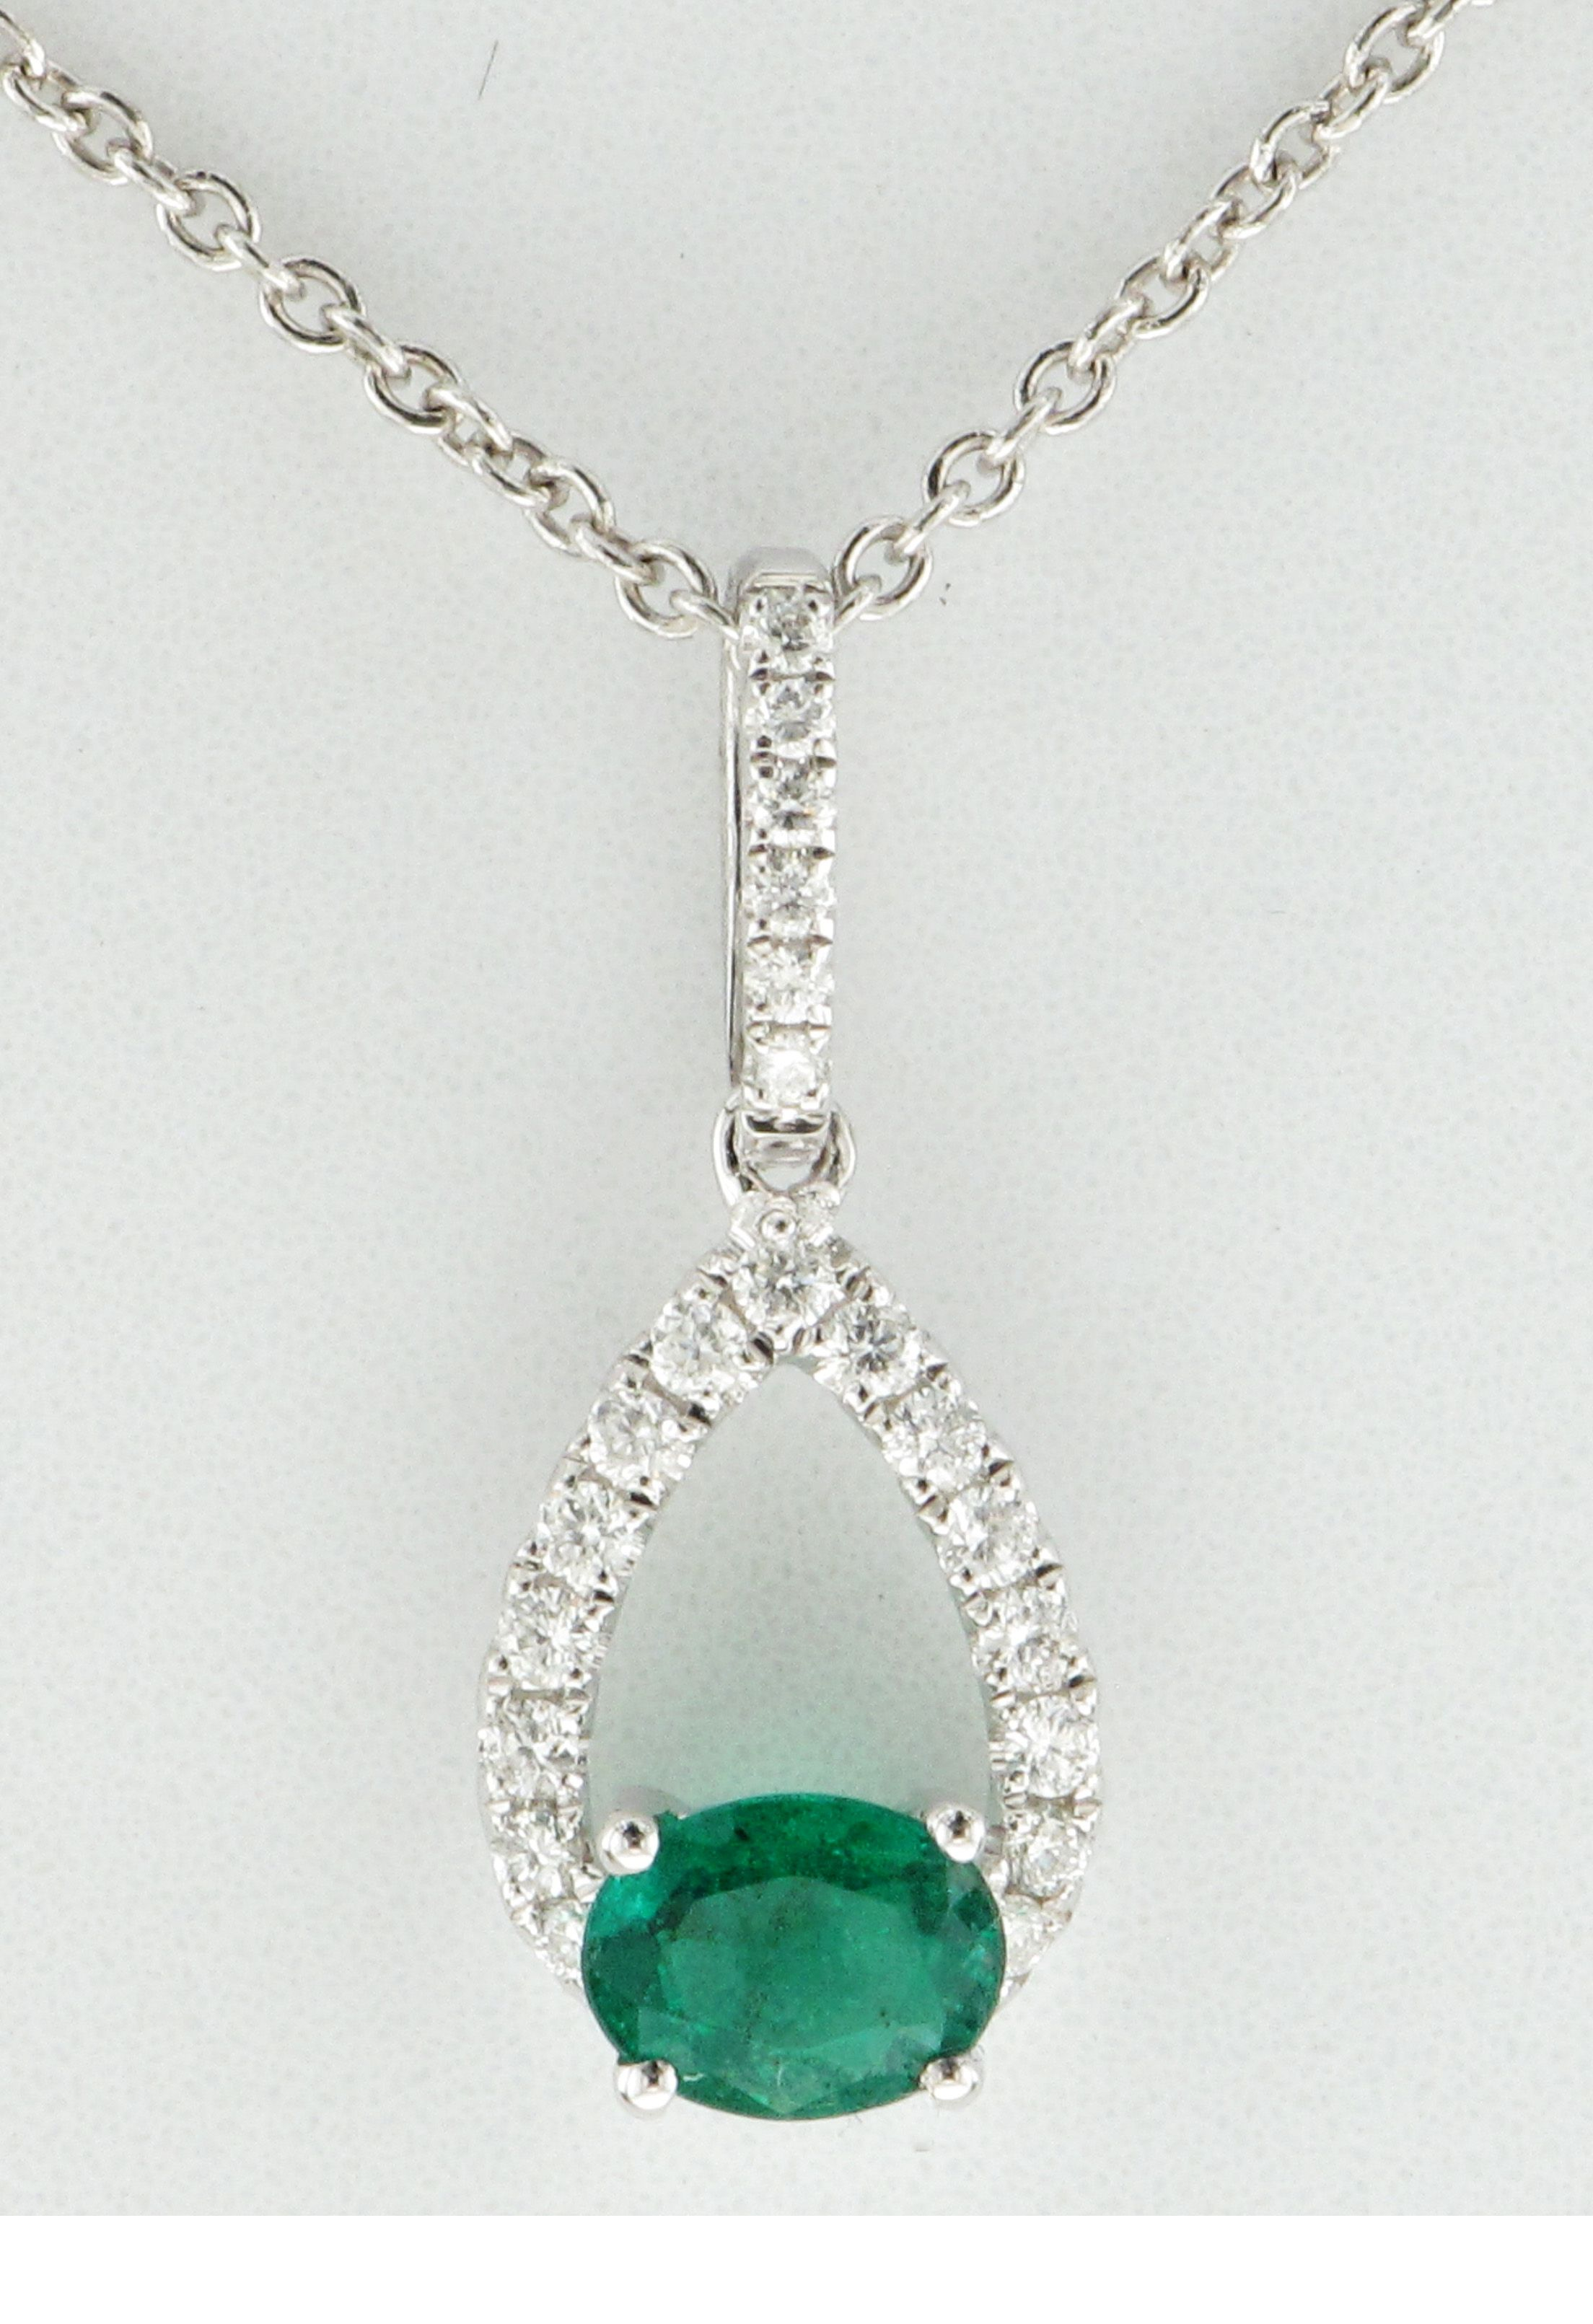 Pin by Farr's Jewelry on Shades of Green Jewelry stores